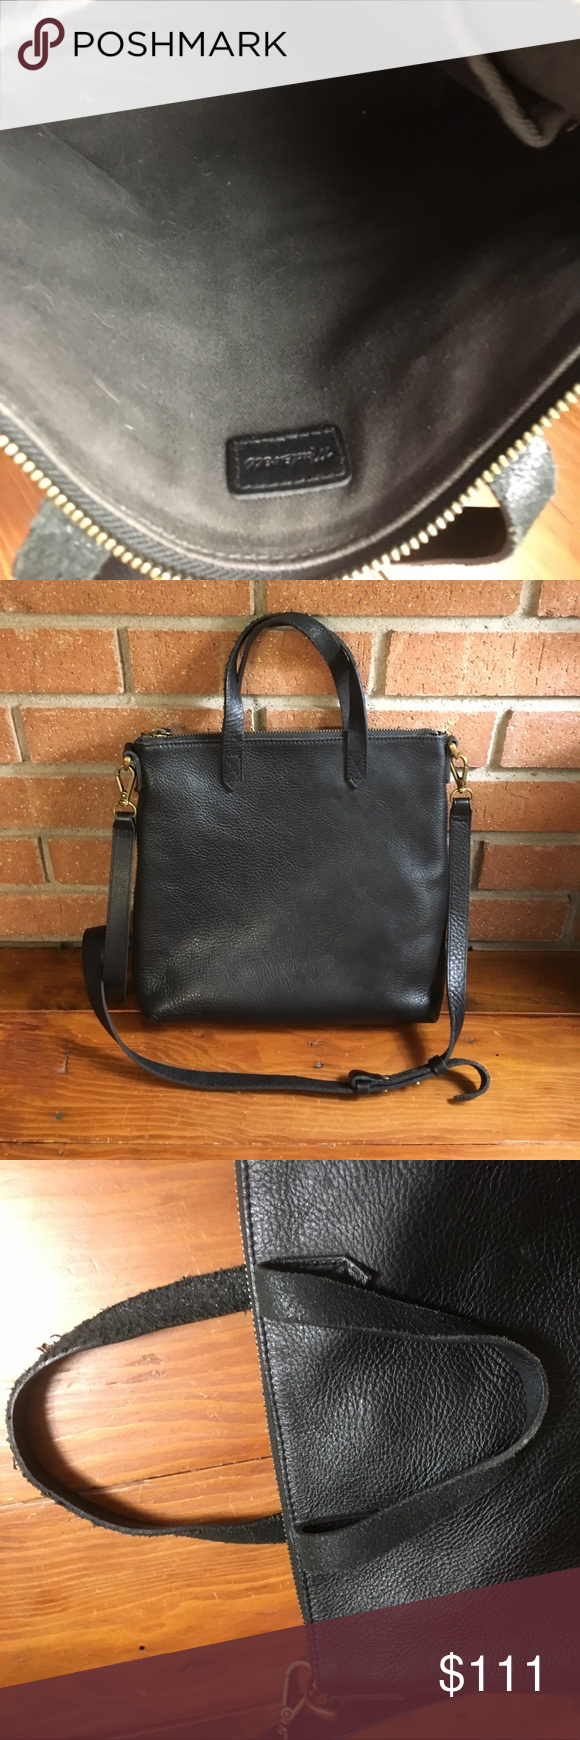 Madewell mini transport true black Good used condition – very minor wear to corners – some wear to handles and strap – see photos – price is firm Madewell Bags Crossbody Bags